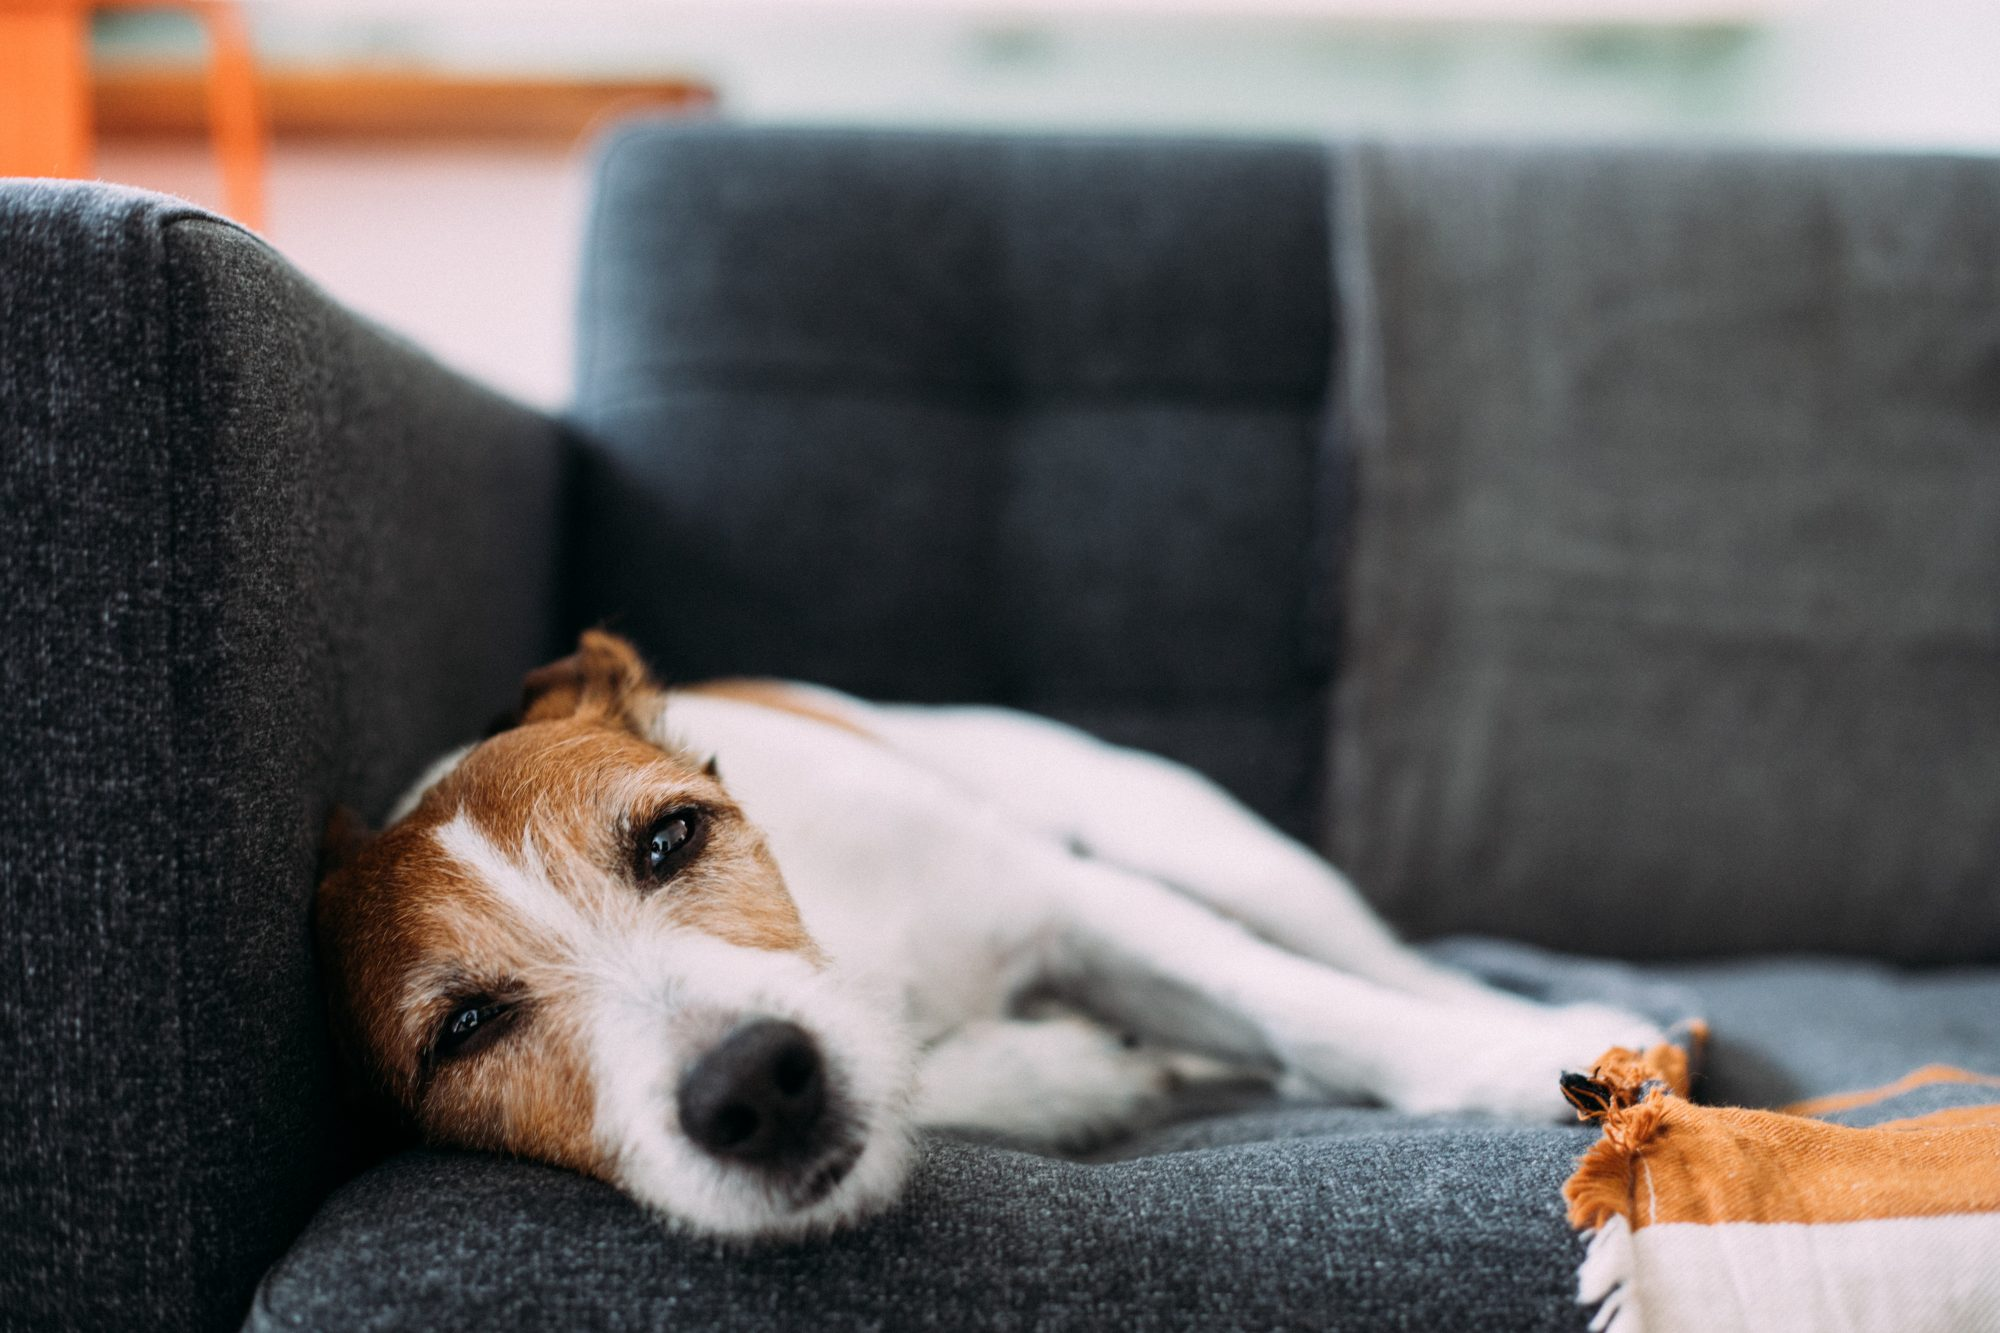 According to New Research, Dogs Could Be the Missing Piece to Finding a Cure for Brain Cancer